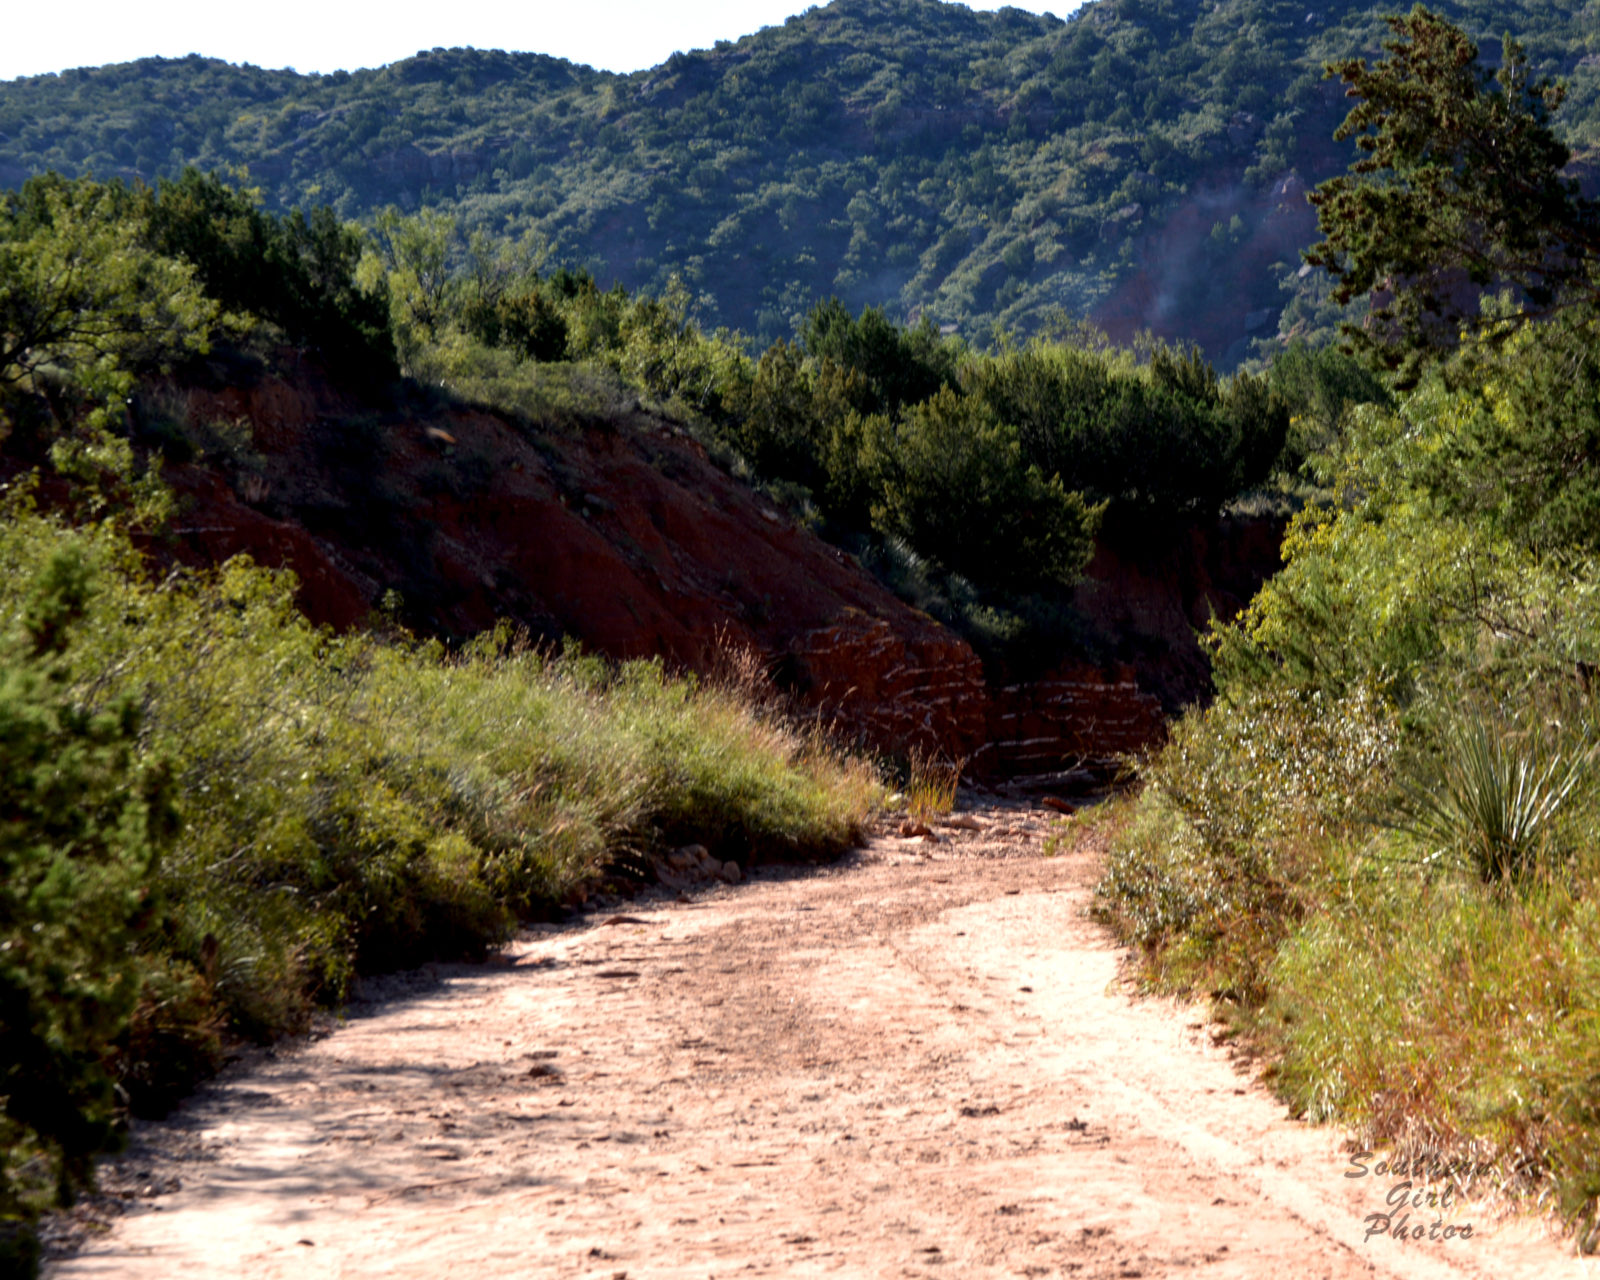 Hiking through the Caprock